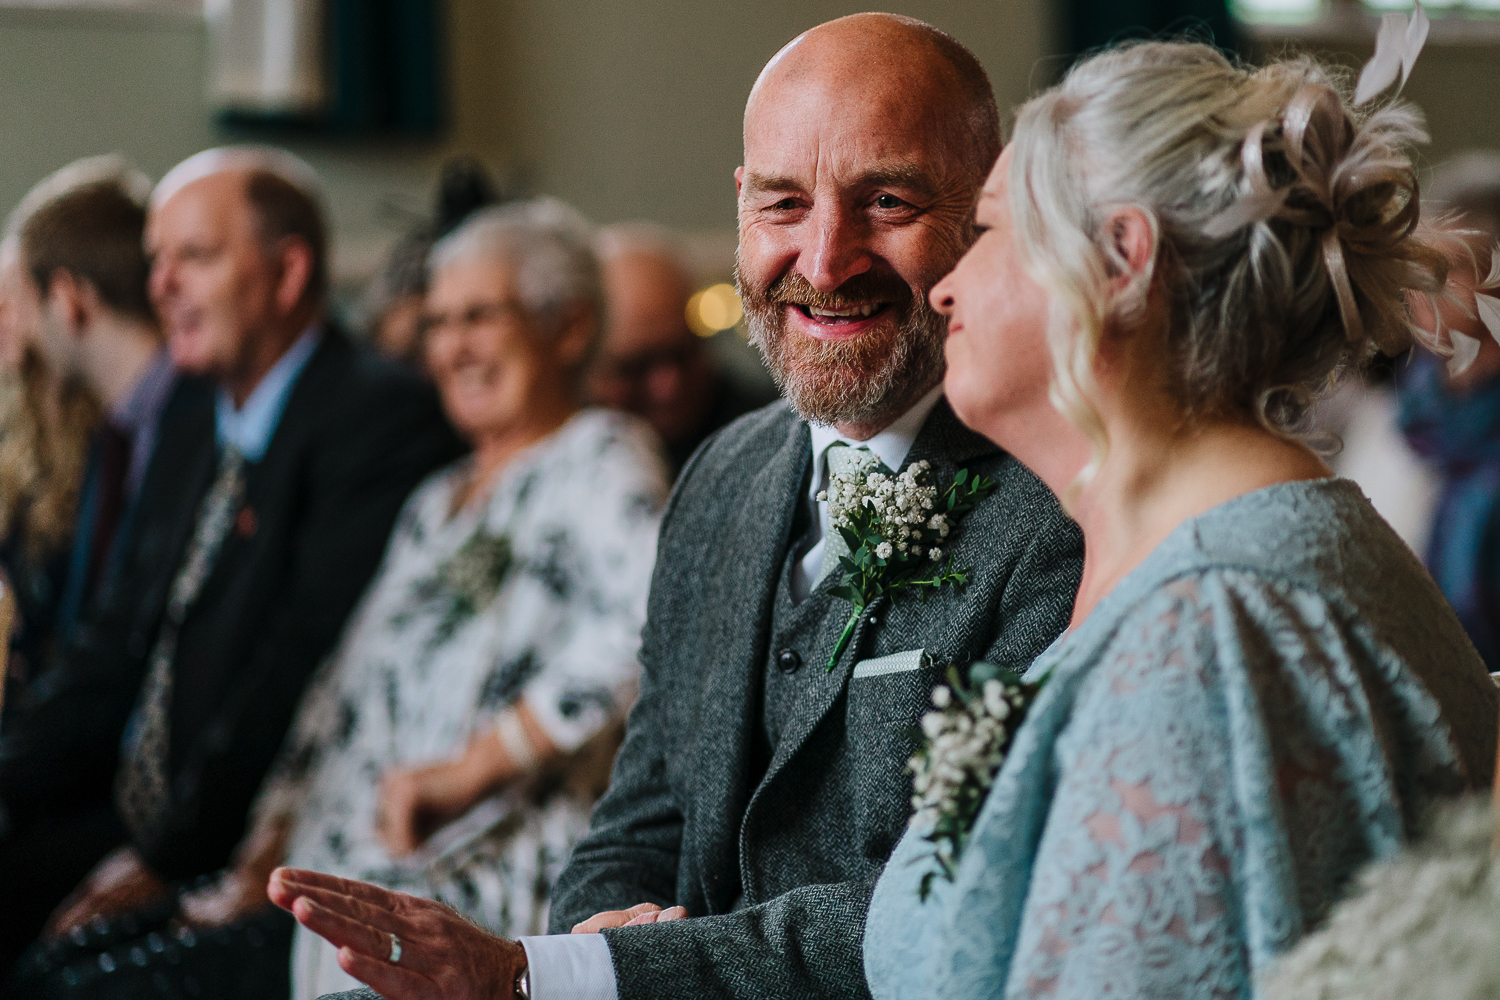 Brides parents laughing together